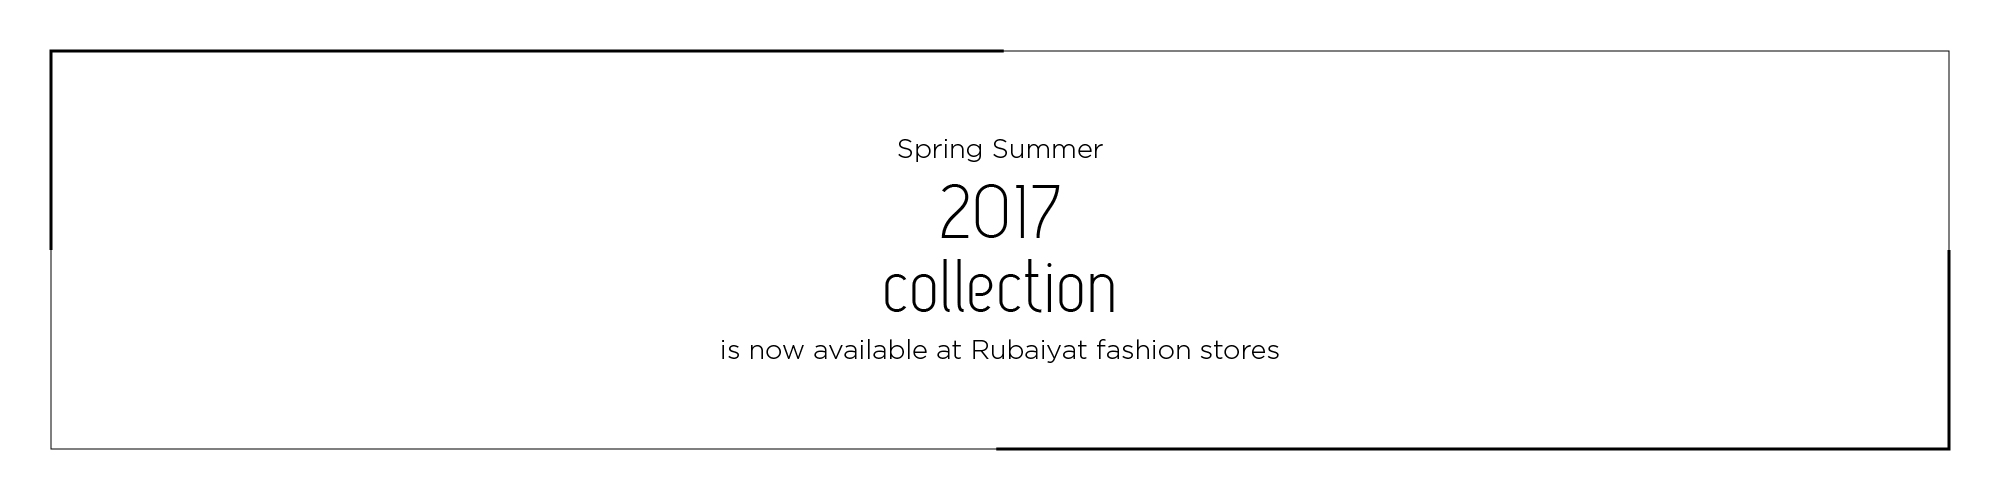 SS-17-COLLECTION-02-web-banner